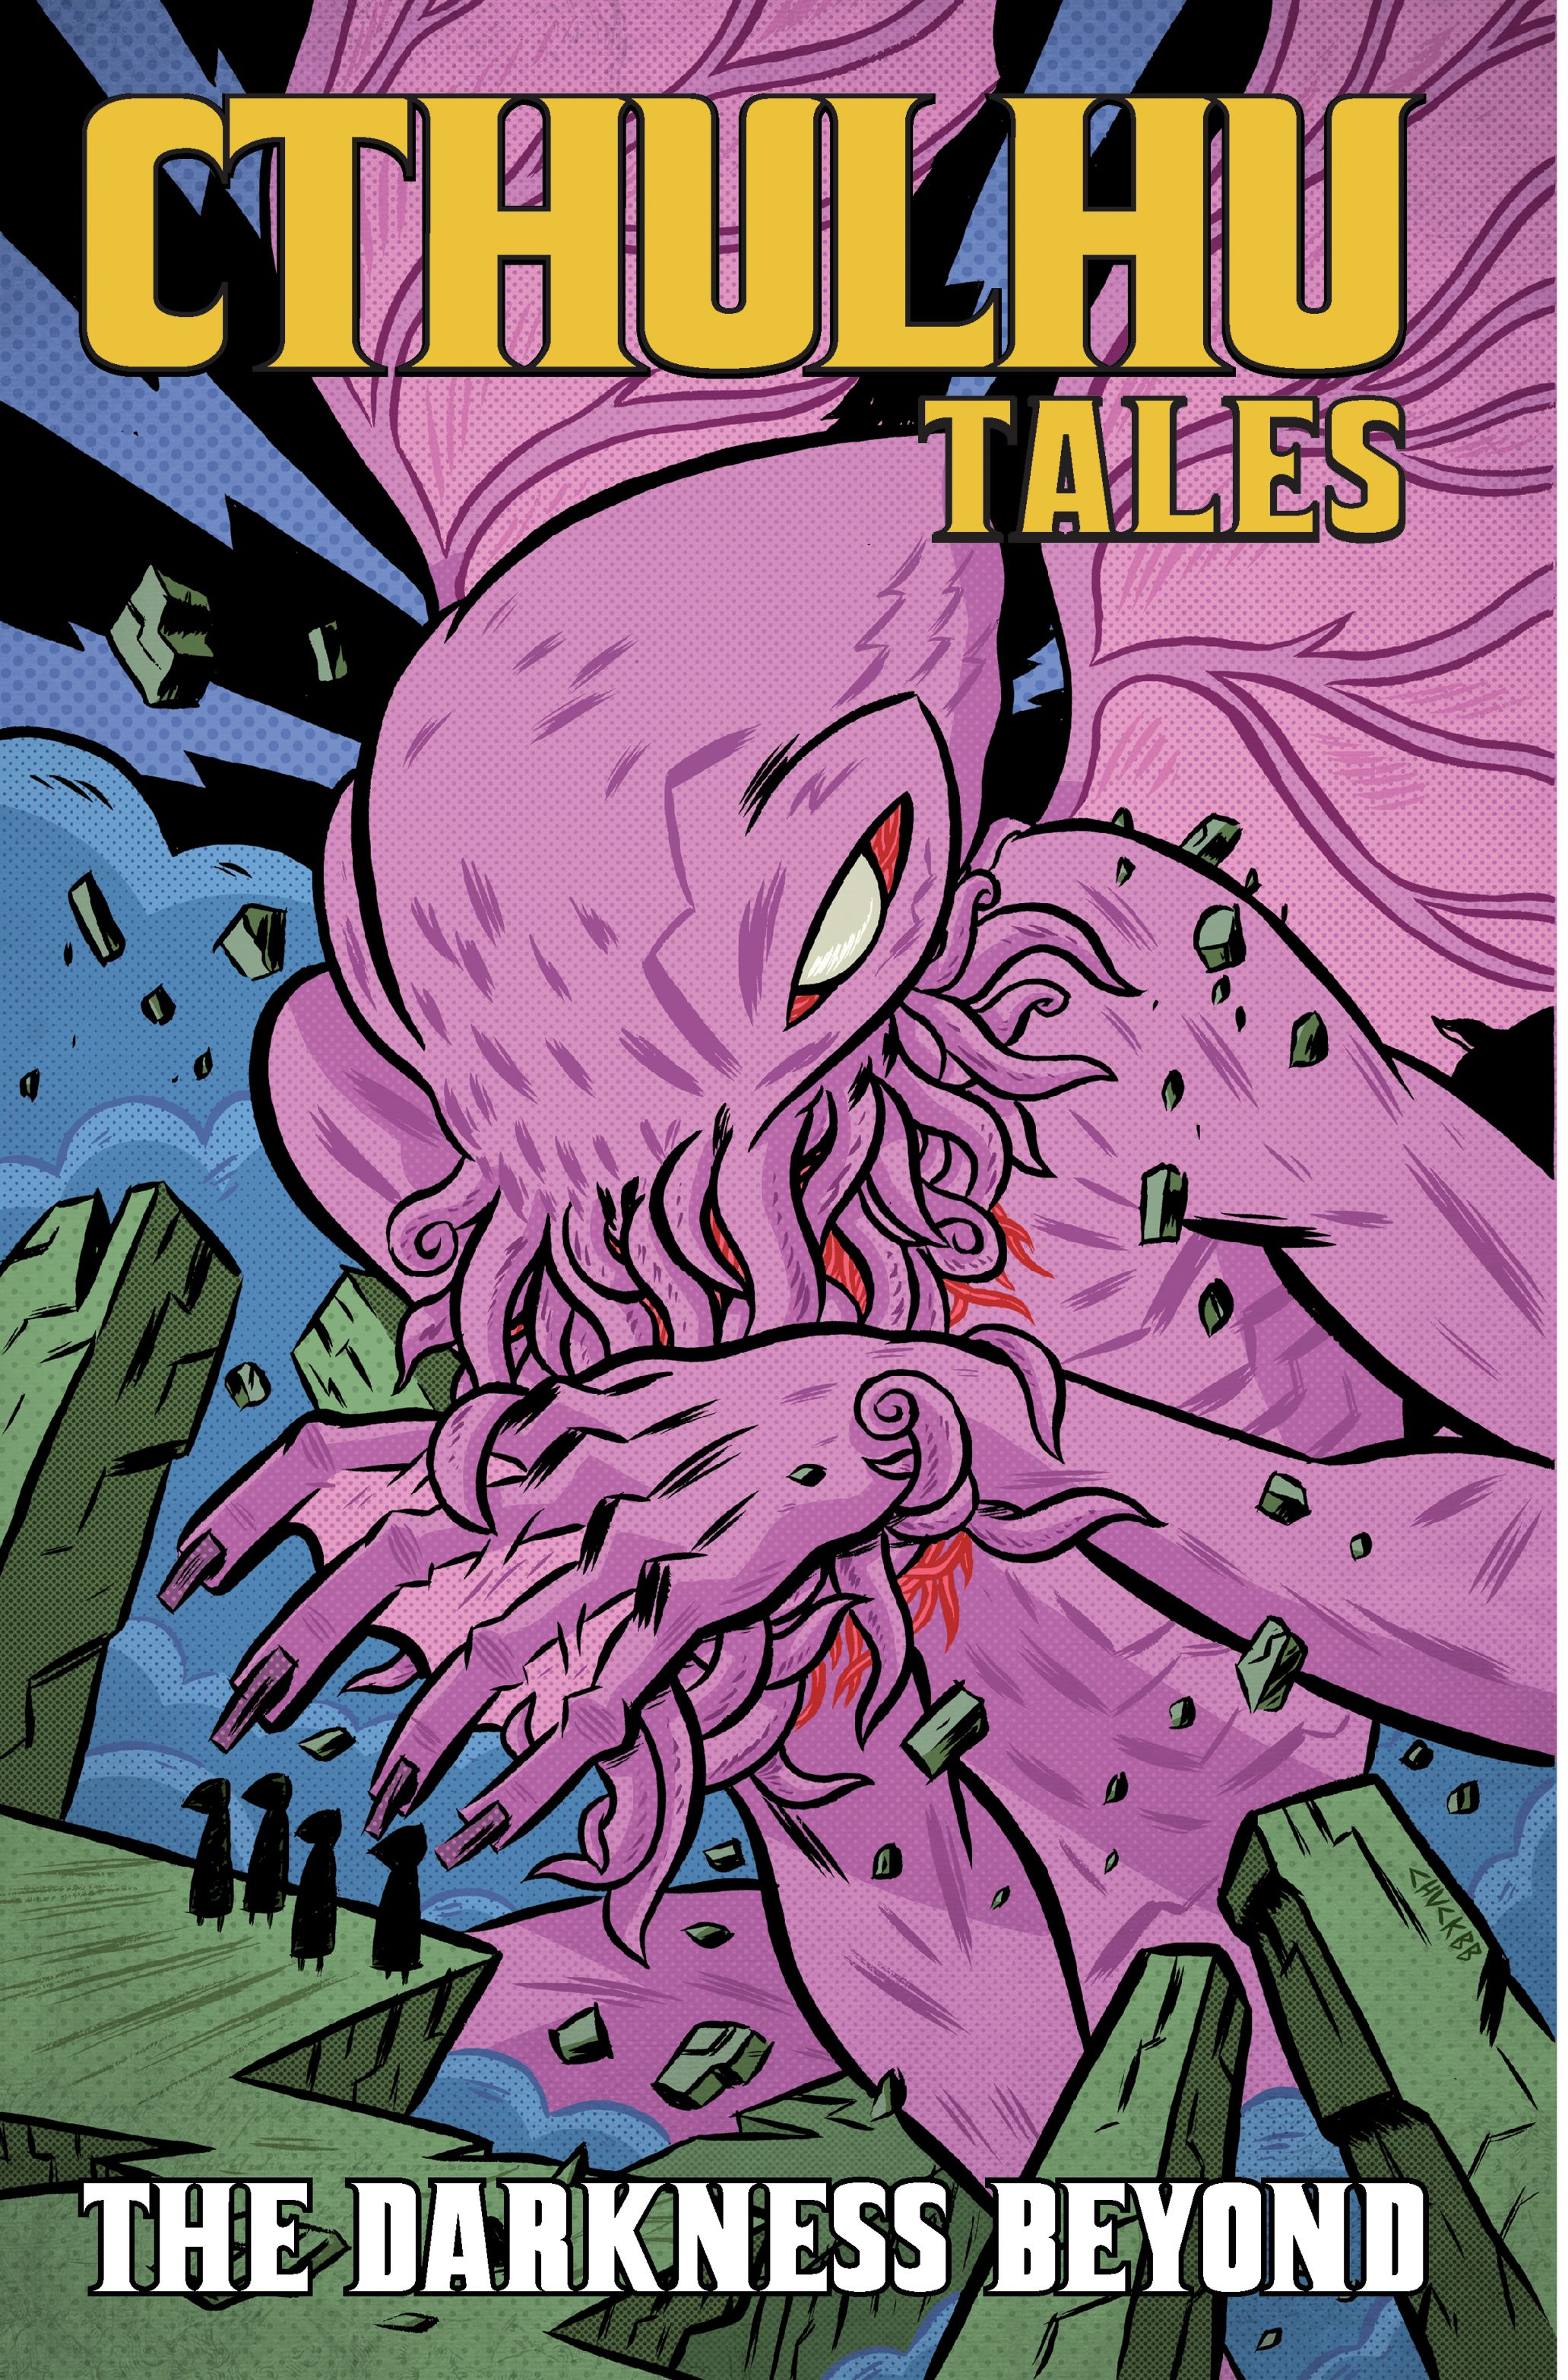 Cthulhu-tales-vol-4-darkness-beyond-9781934506769_hr